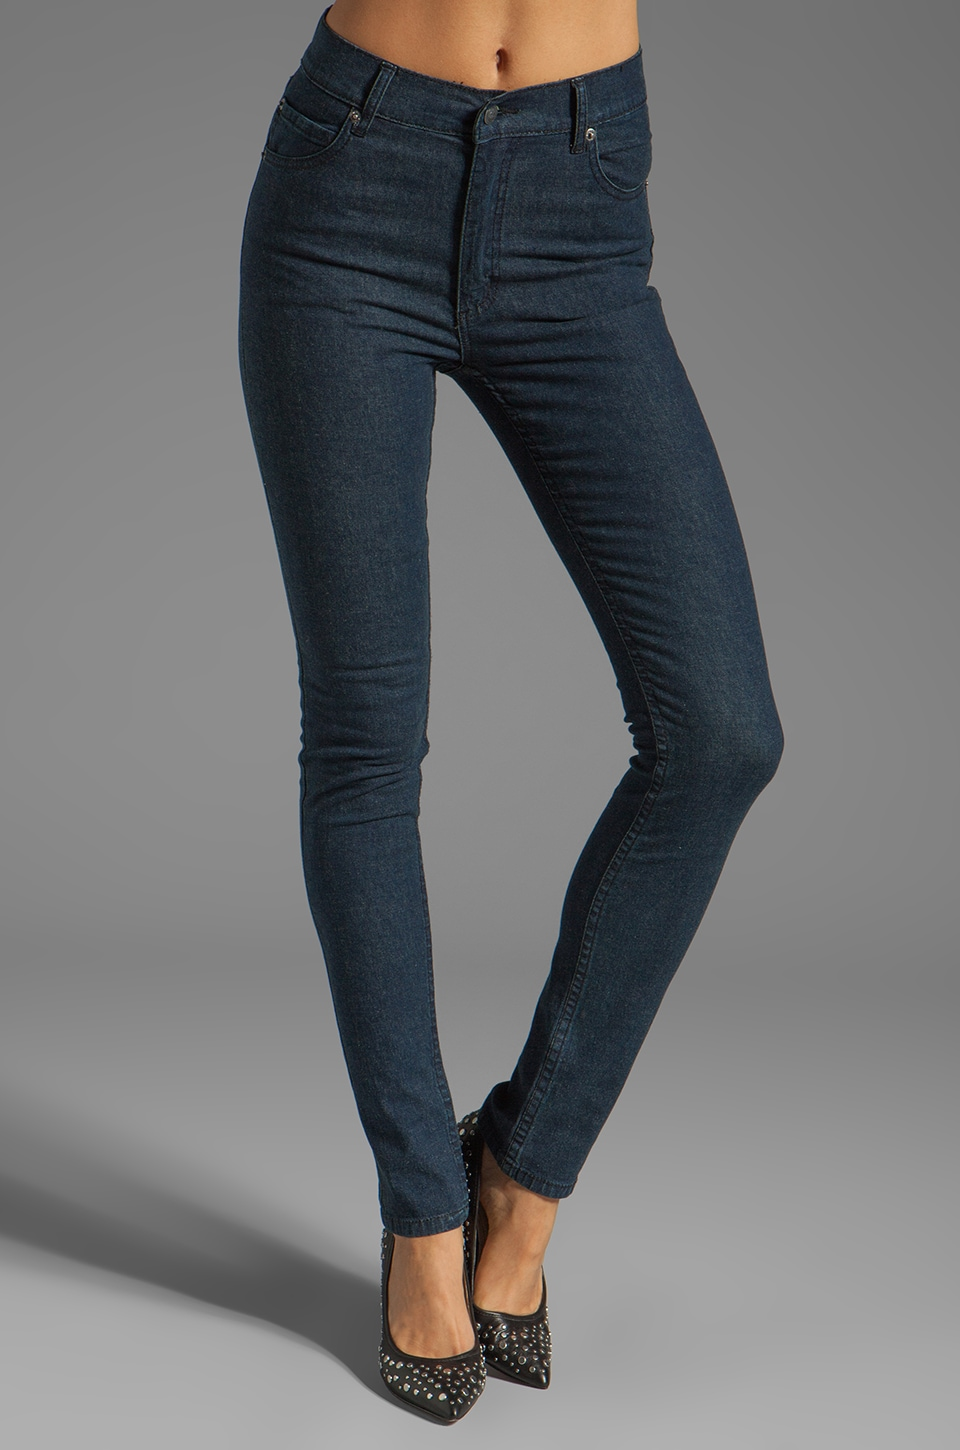 Cheap Monday Second Skin in Very Stretch Onewash